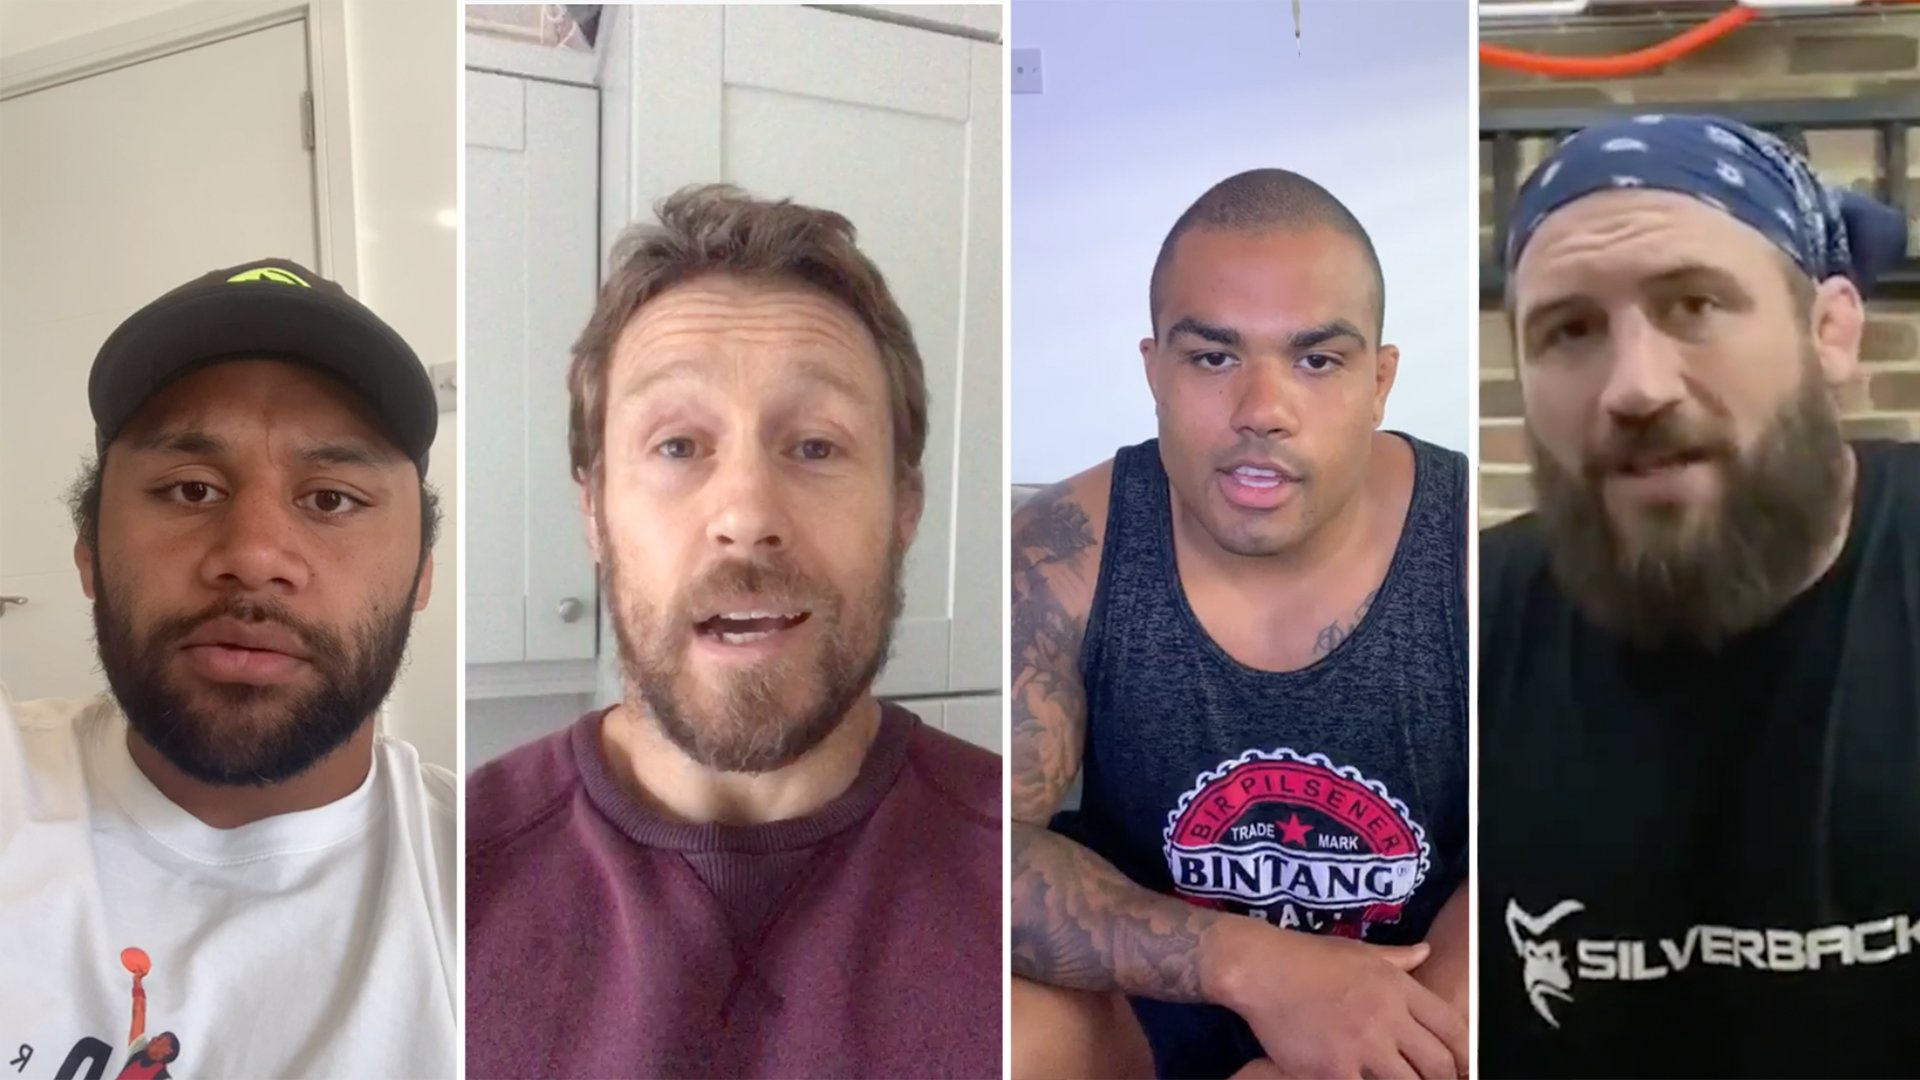 Rugby stars have suddenly started taking part in this challenge